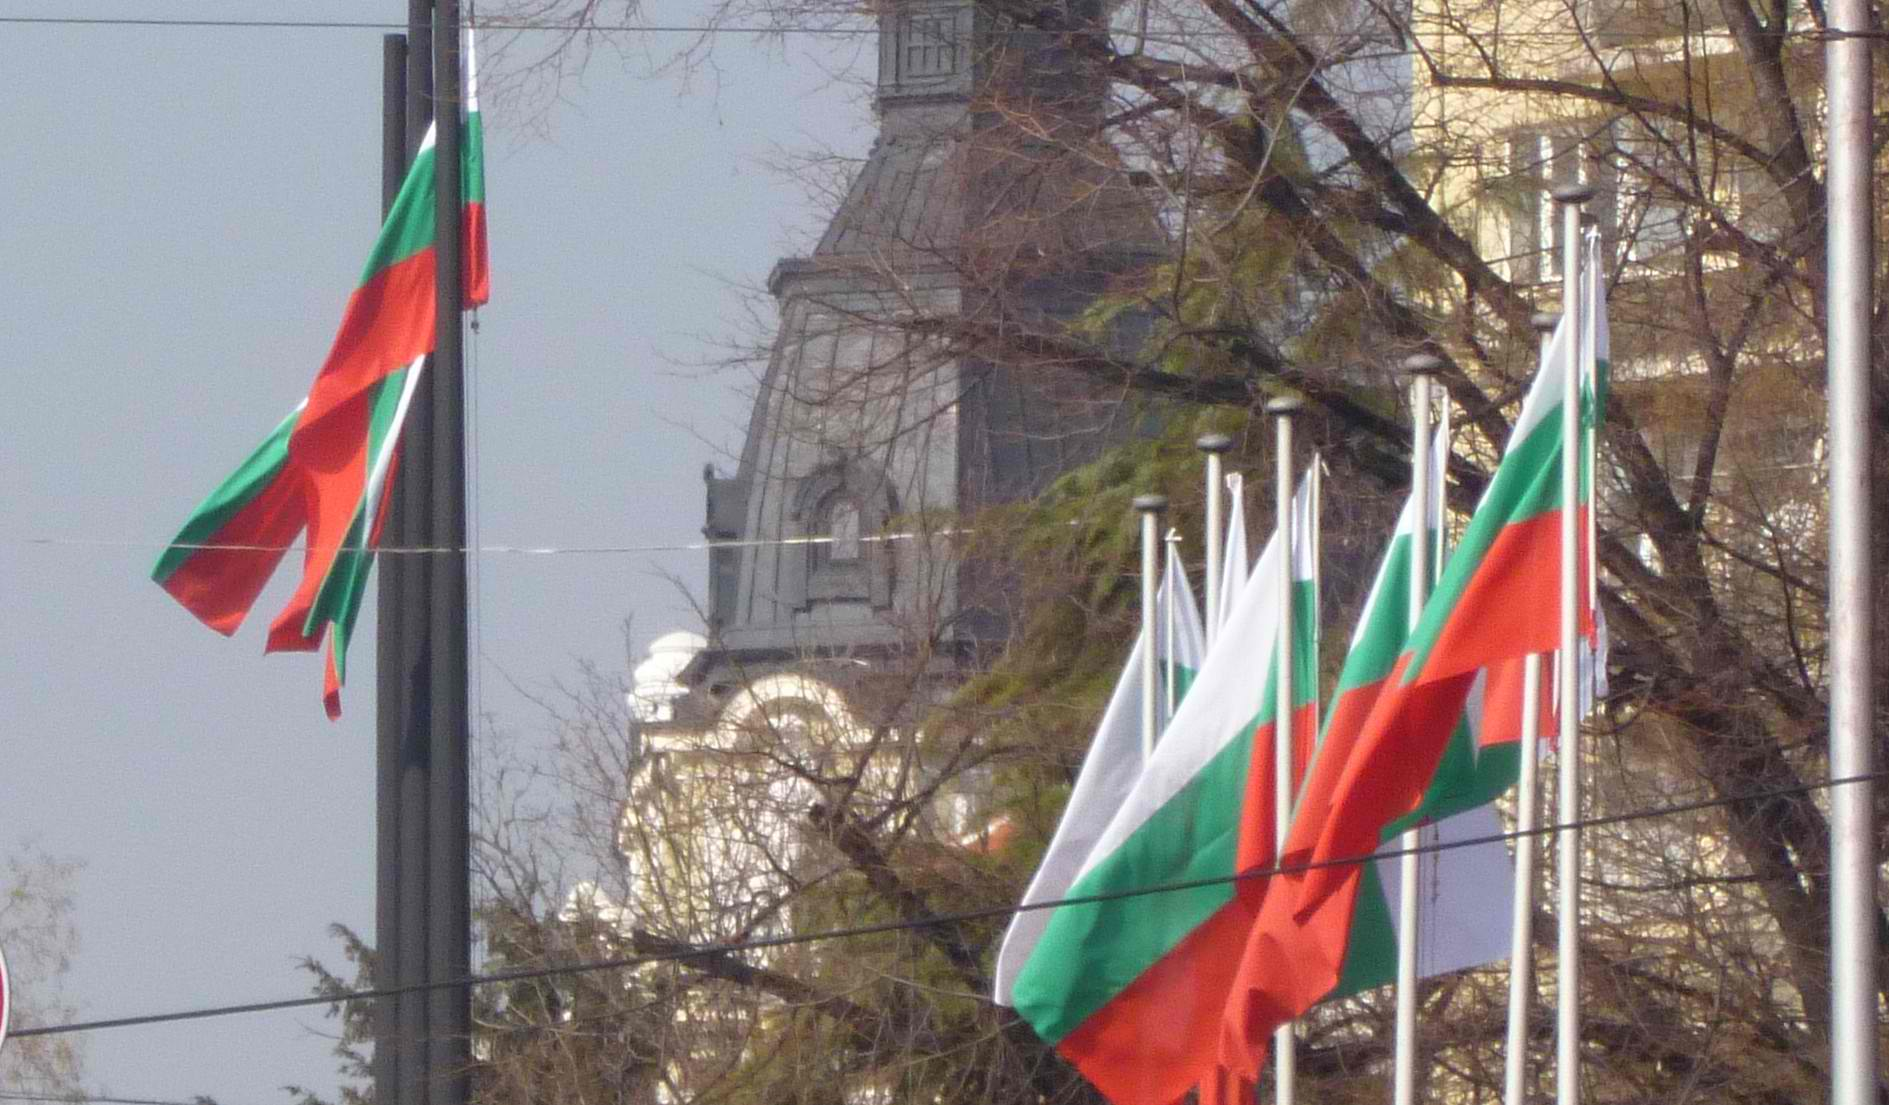 Bulgaria's 2013 parliamentary elections: Profiles of parties and players